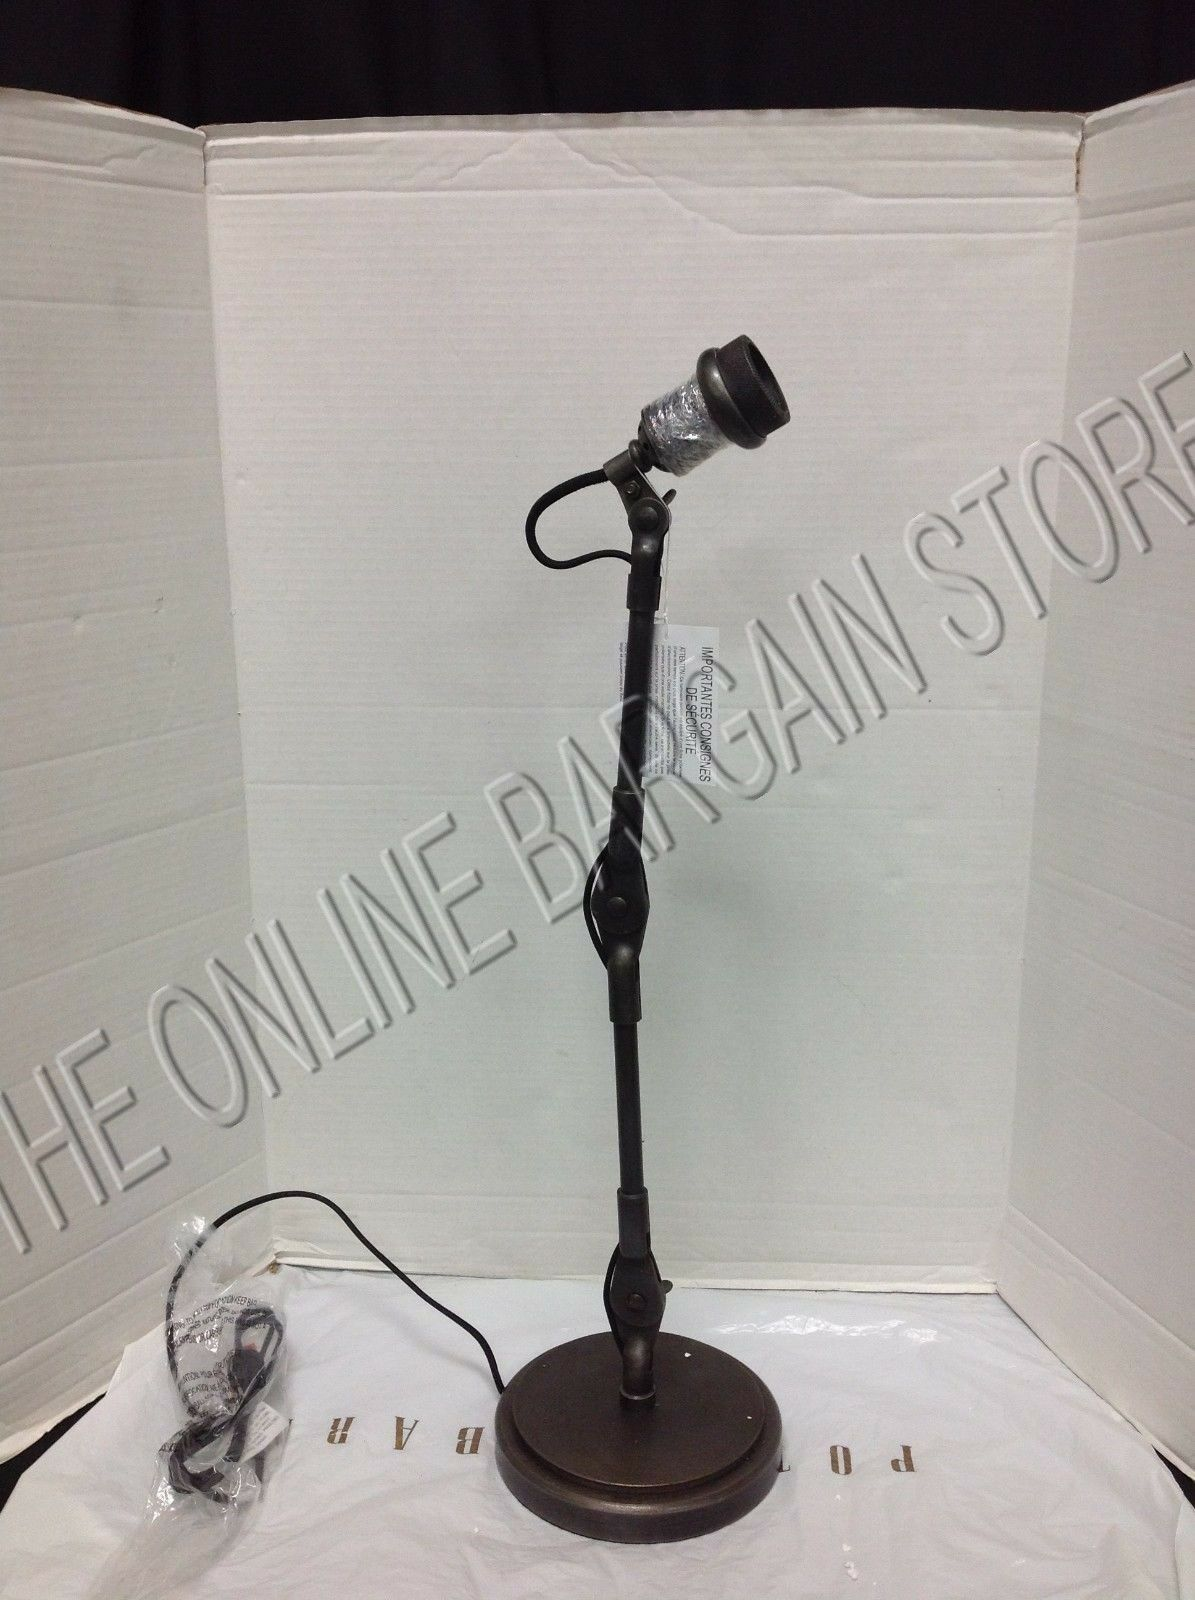 Pottery barn sidney vintage task table lamp light fixture antique picture 1 of 4 geotapseo Images